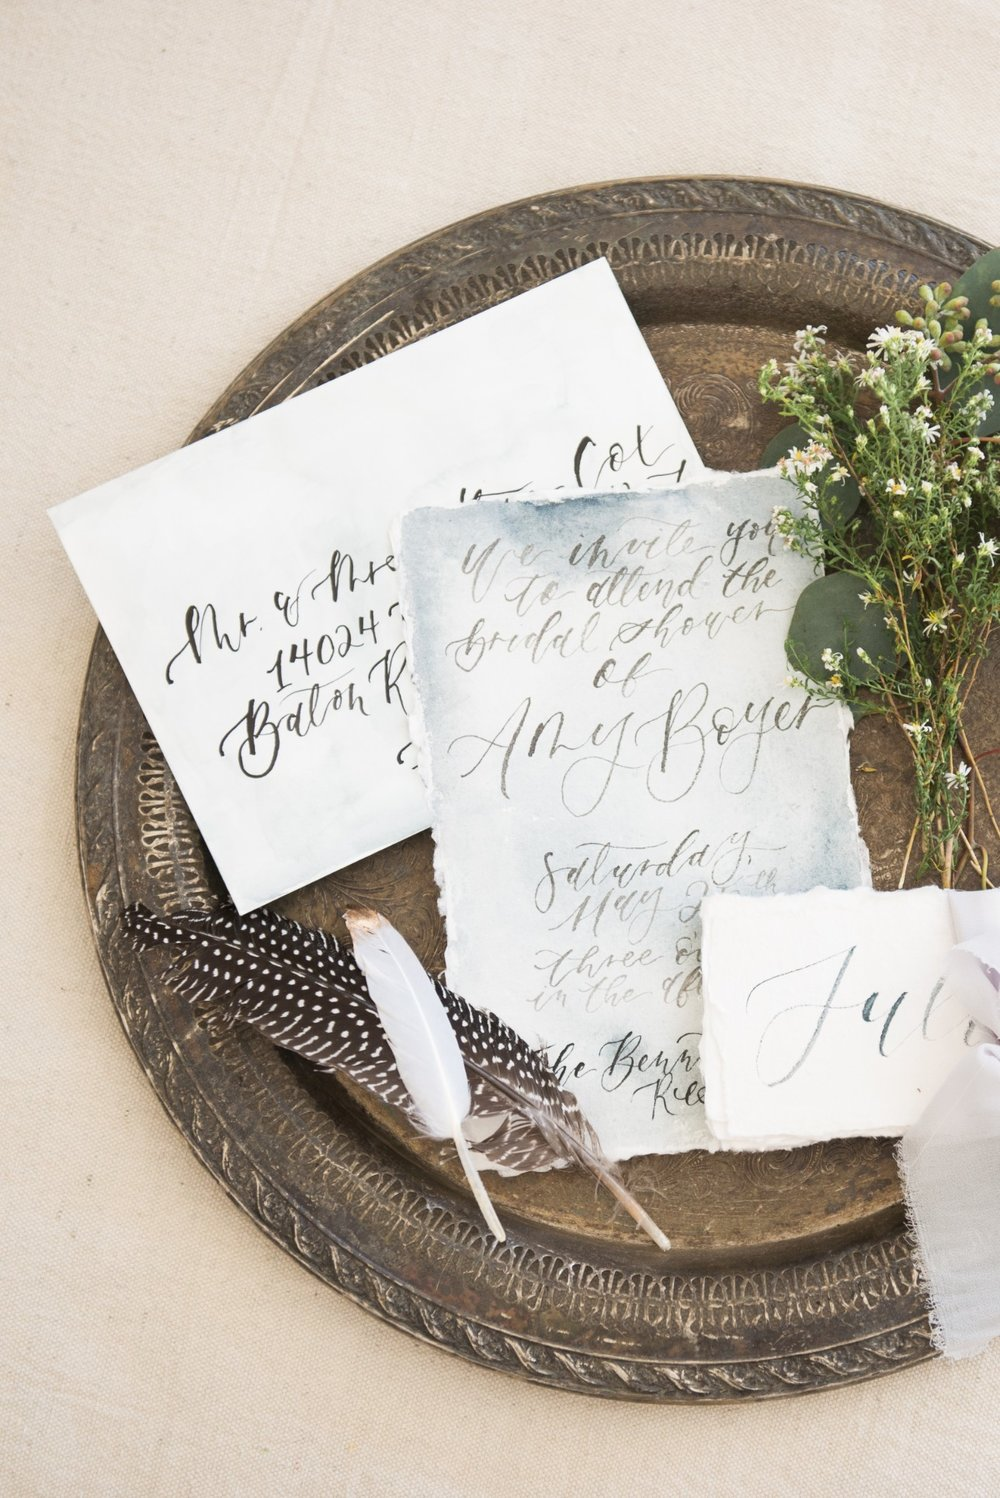 Upstairs paper studio. Modern vintage party. Tablescapes. Modern vintage decor. The Vintage Round Top. Collaboration. Paige's blog.